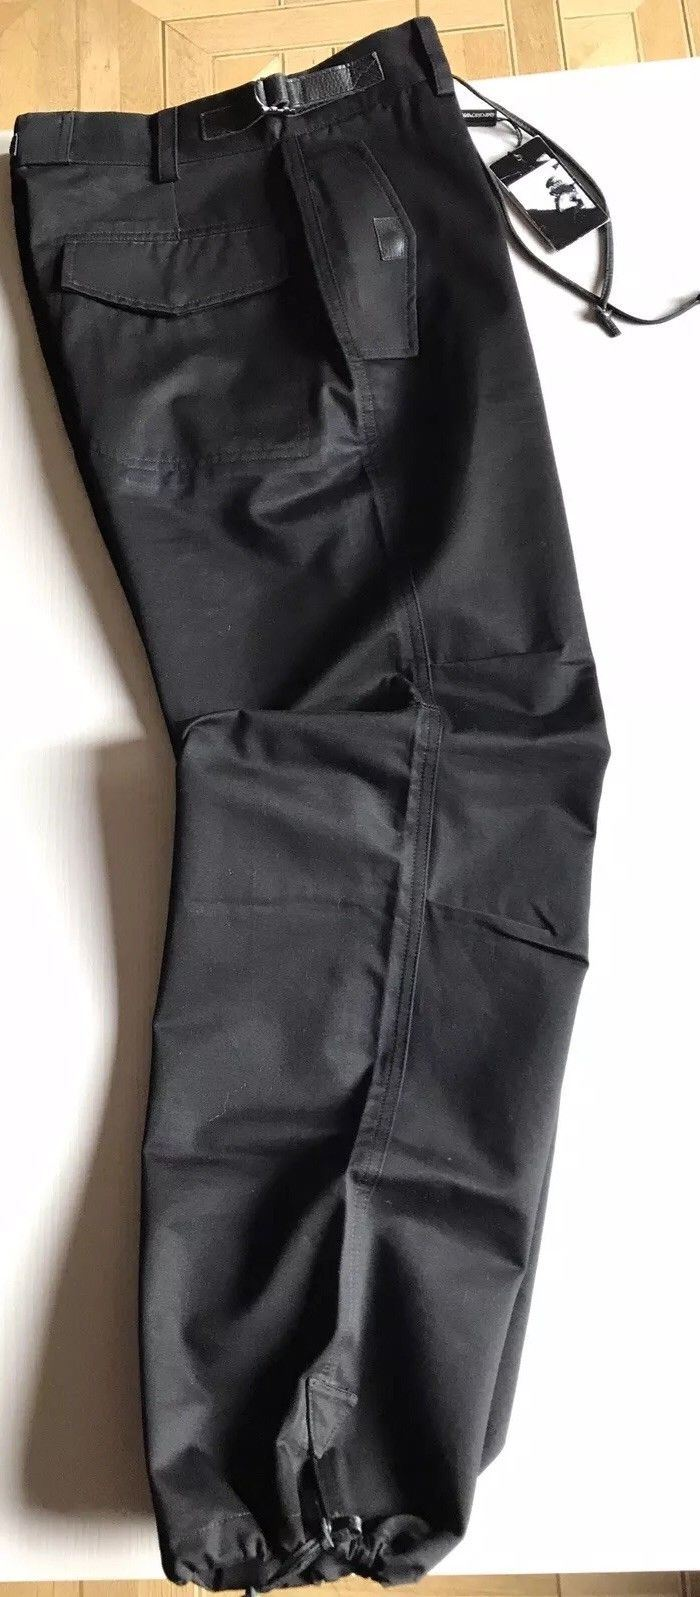 New $575 Emporio Armani Men's Pants Black 32 US ( 48 Eu ) Italy